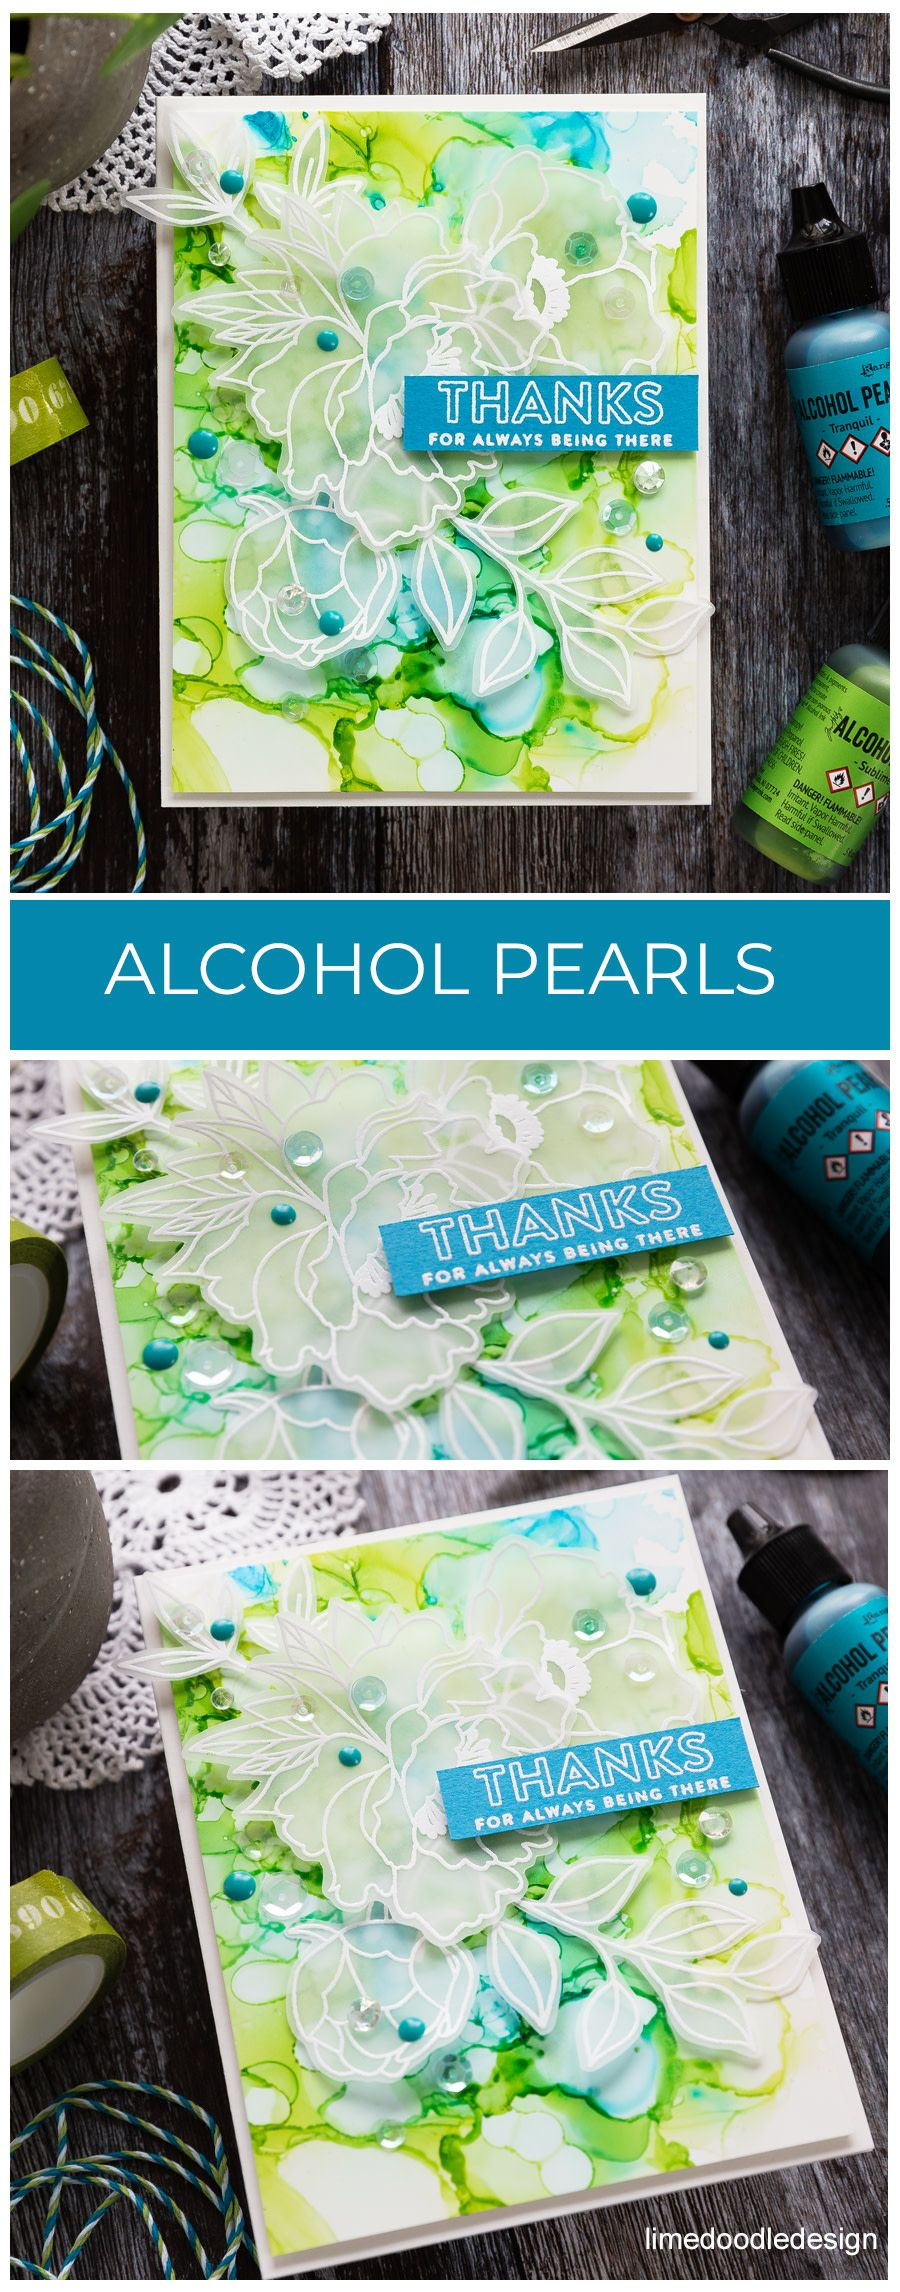 Alcohol Pearls Inked Background #cardkit